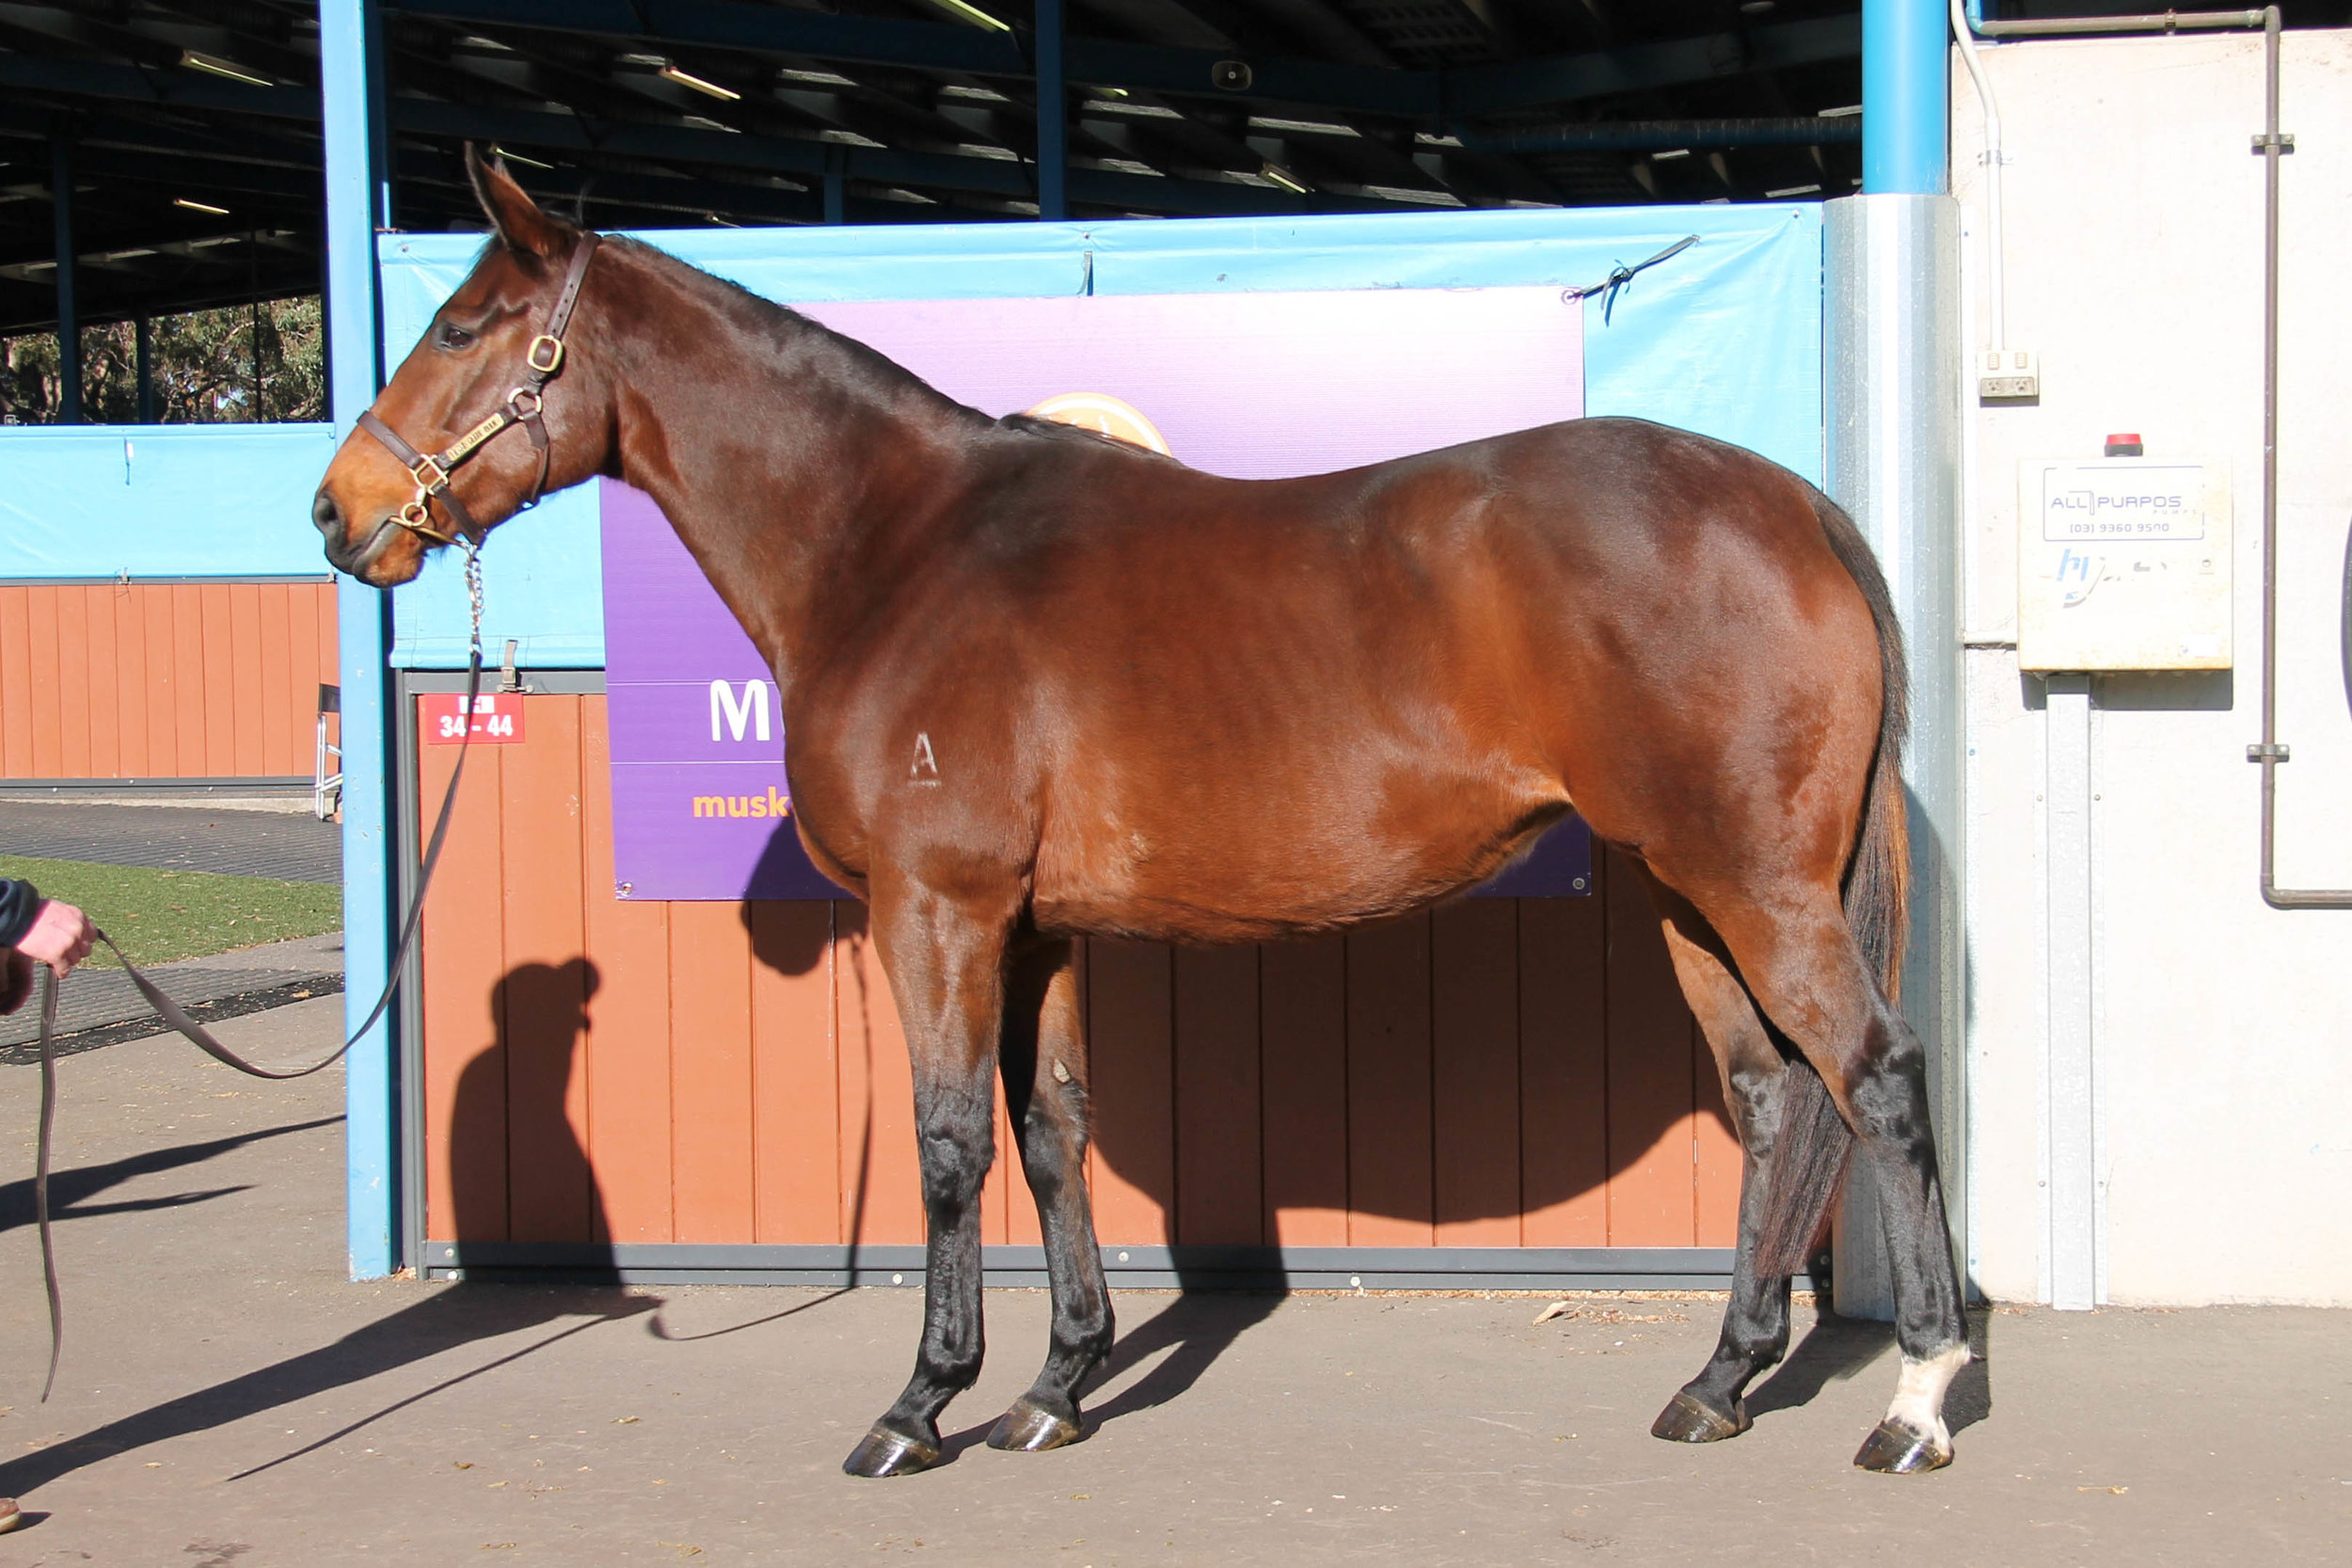 Lot 803 - Warrington - In Foal to Impending - Sold for $100,000 to Cornerstone Stud SA